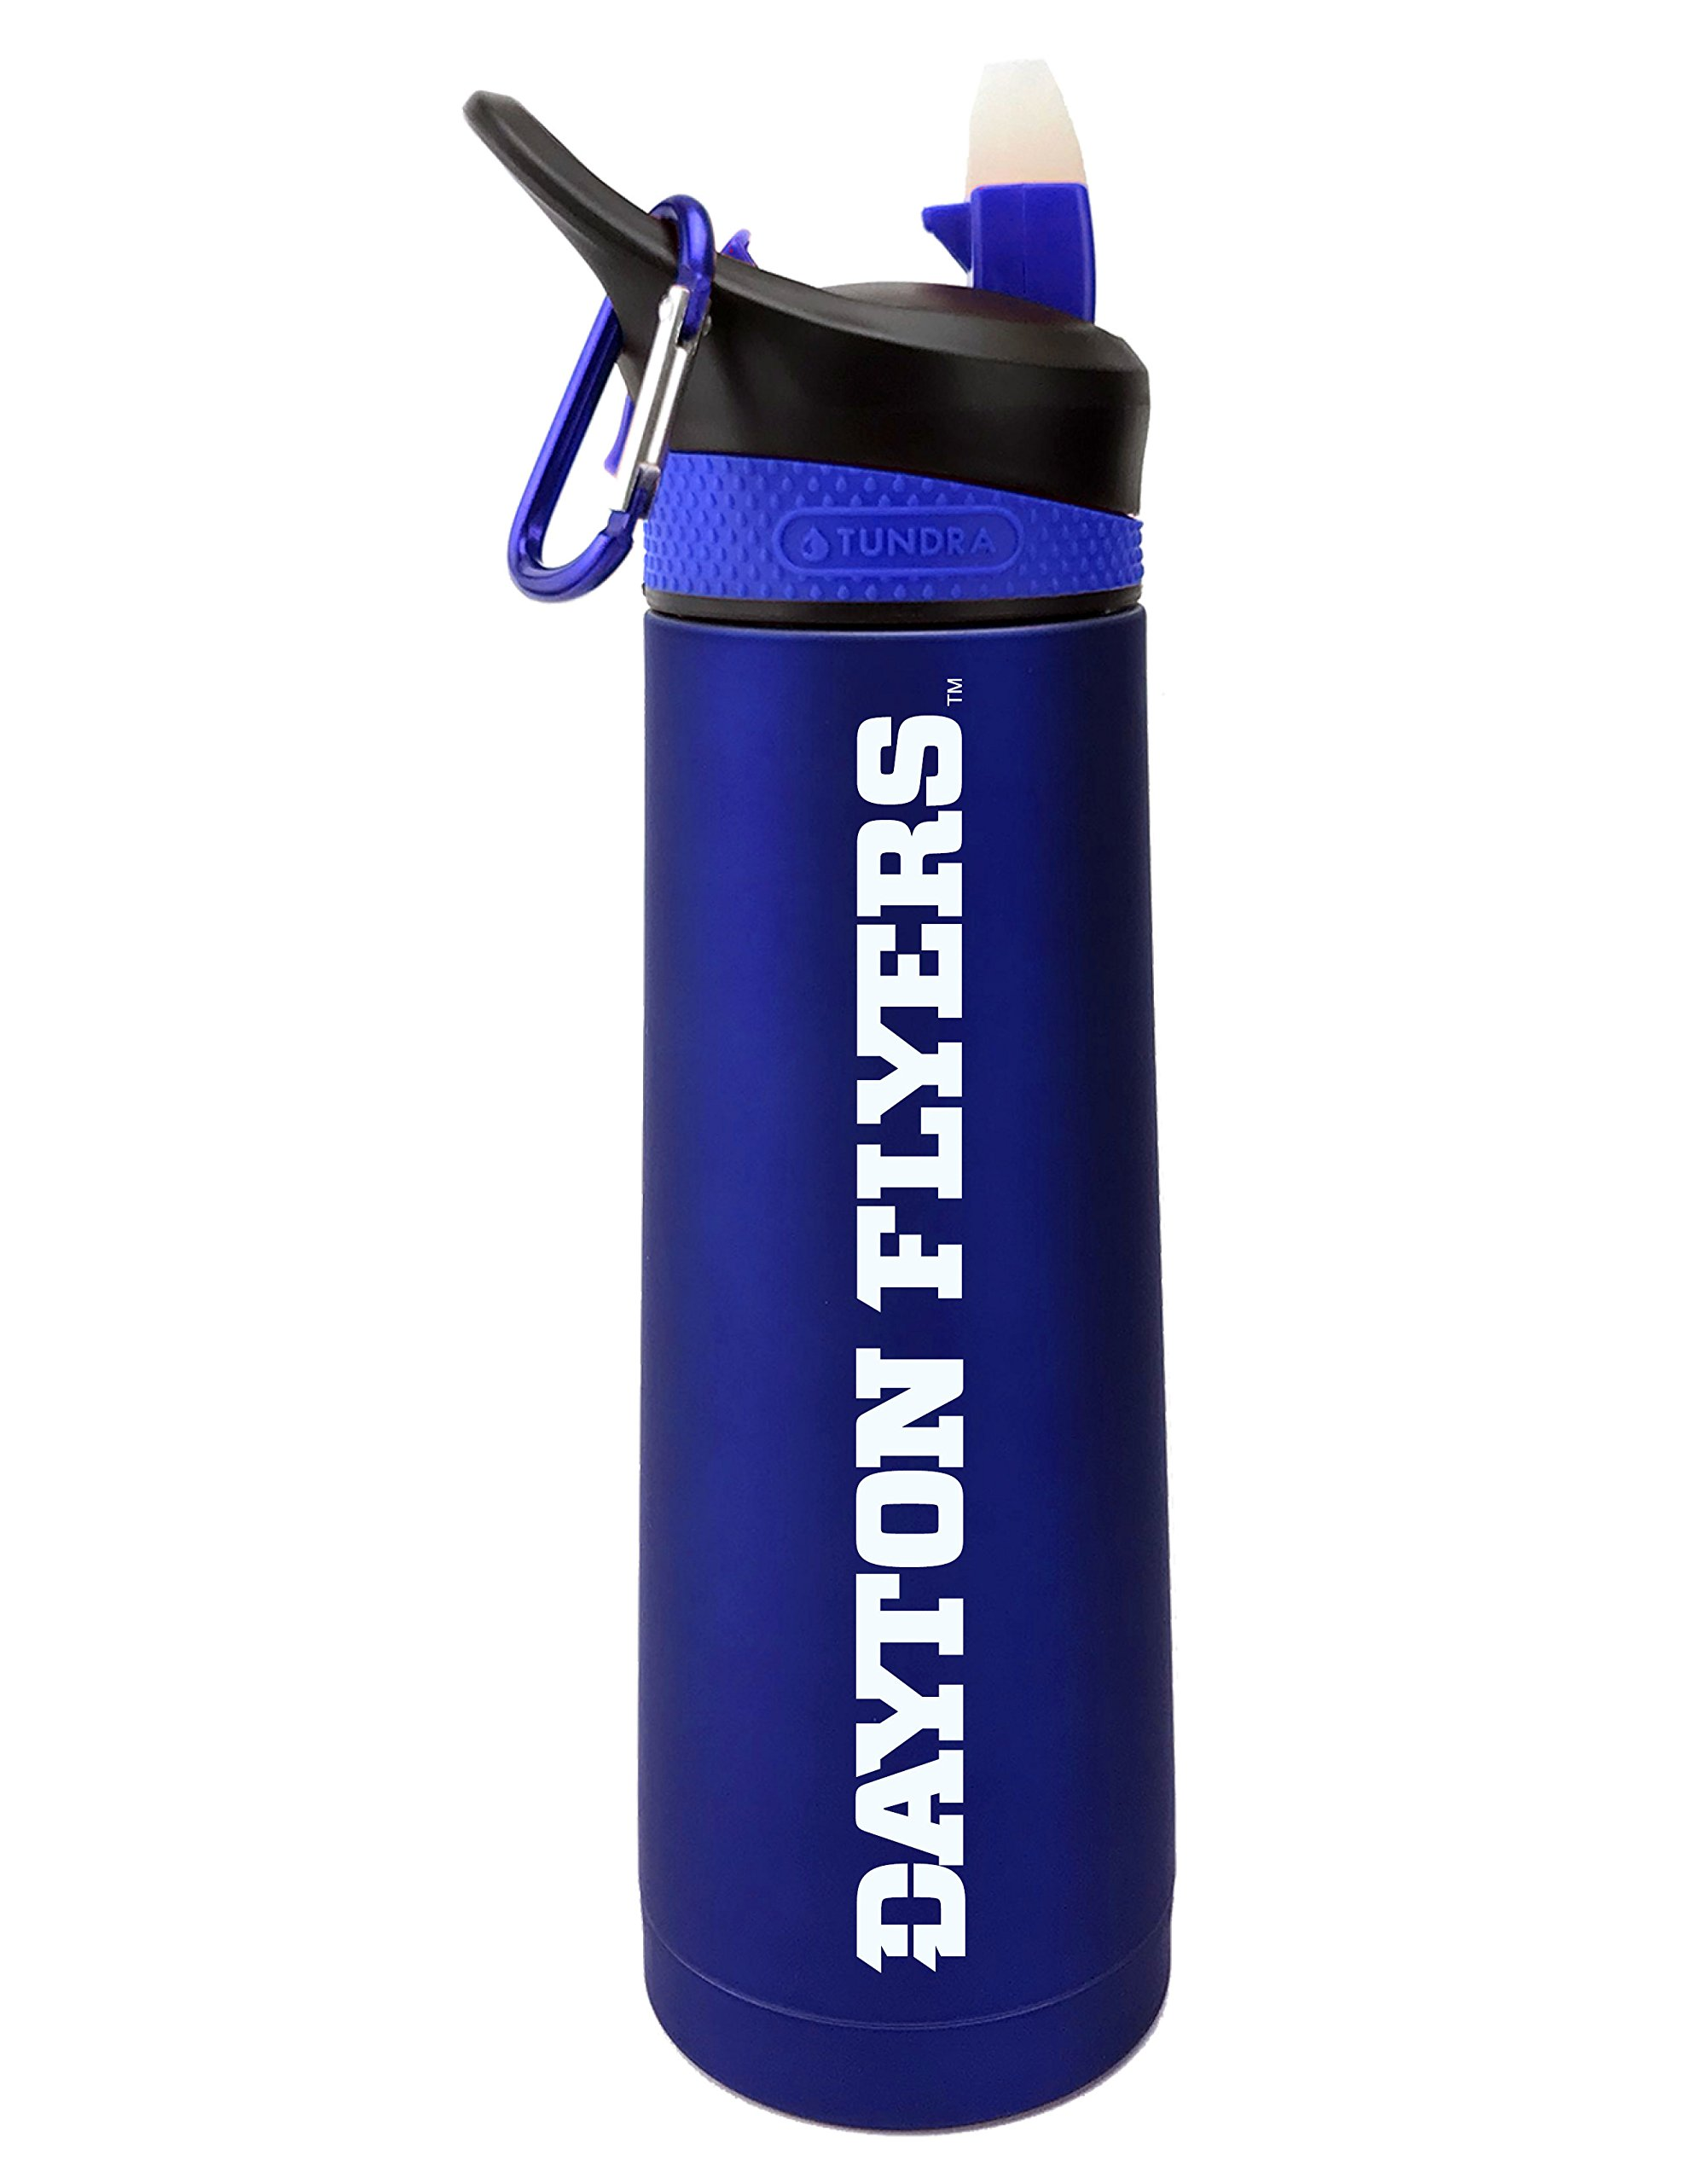 Fanatic Group University of Dayton Dual Walled Stainless Steel Sports Bottle, Design 2 - Blue